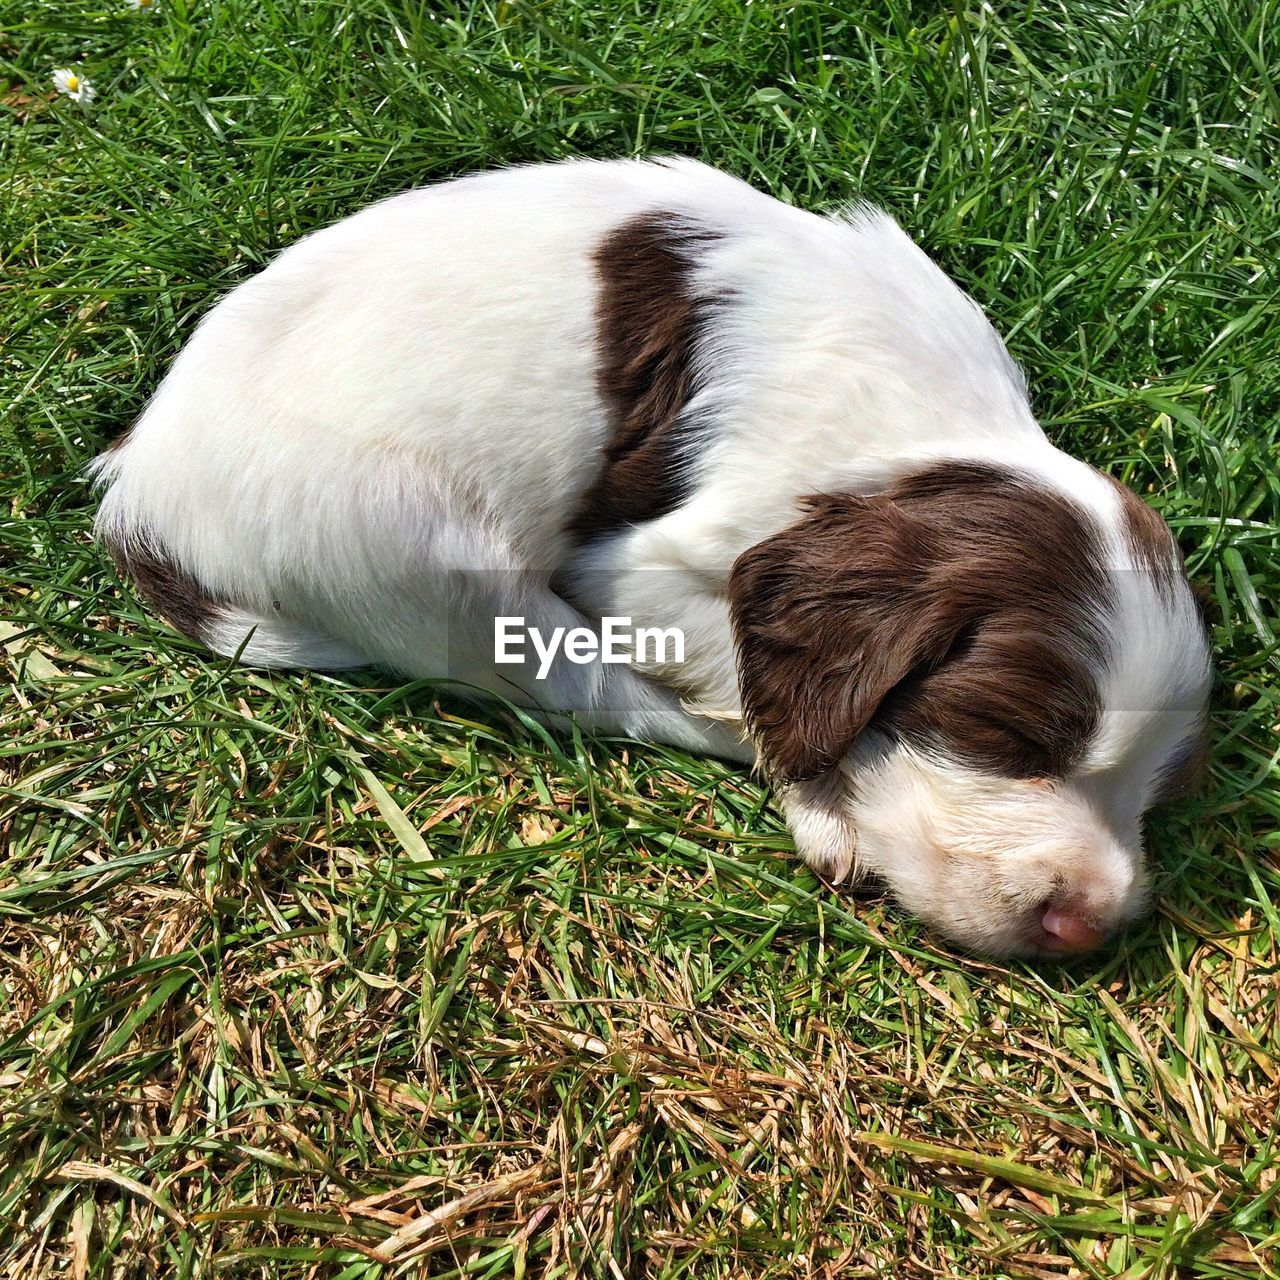 pets, domestic, one animal, domestic animals, animal themes, mammal, animal, grass, vertebrate, plant, dog, canine, field, relaxation, nature, high angle view, land, green color, no people, sleeping, shih tzu